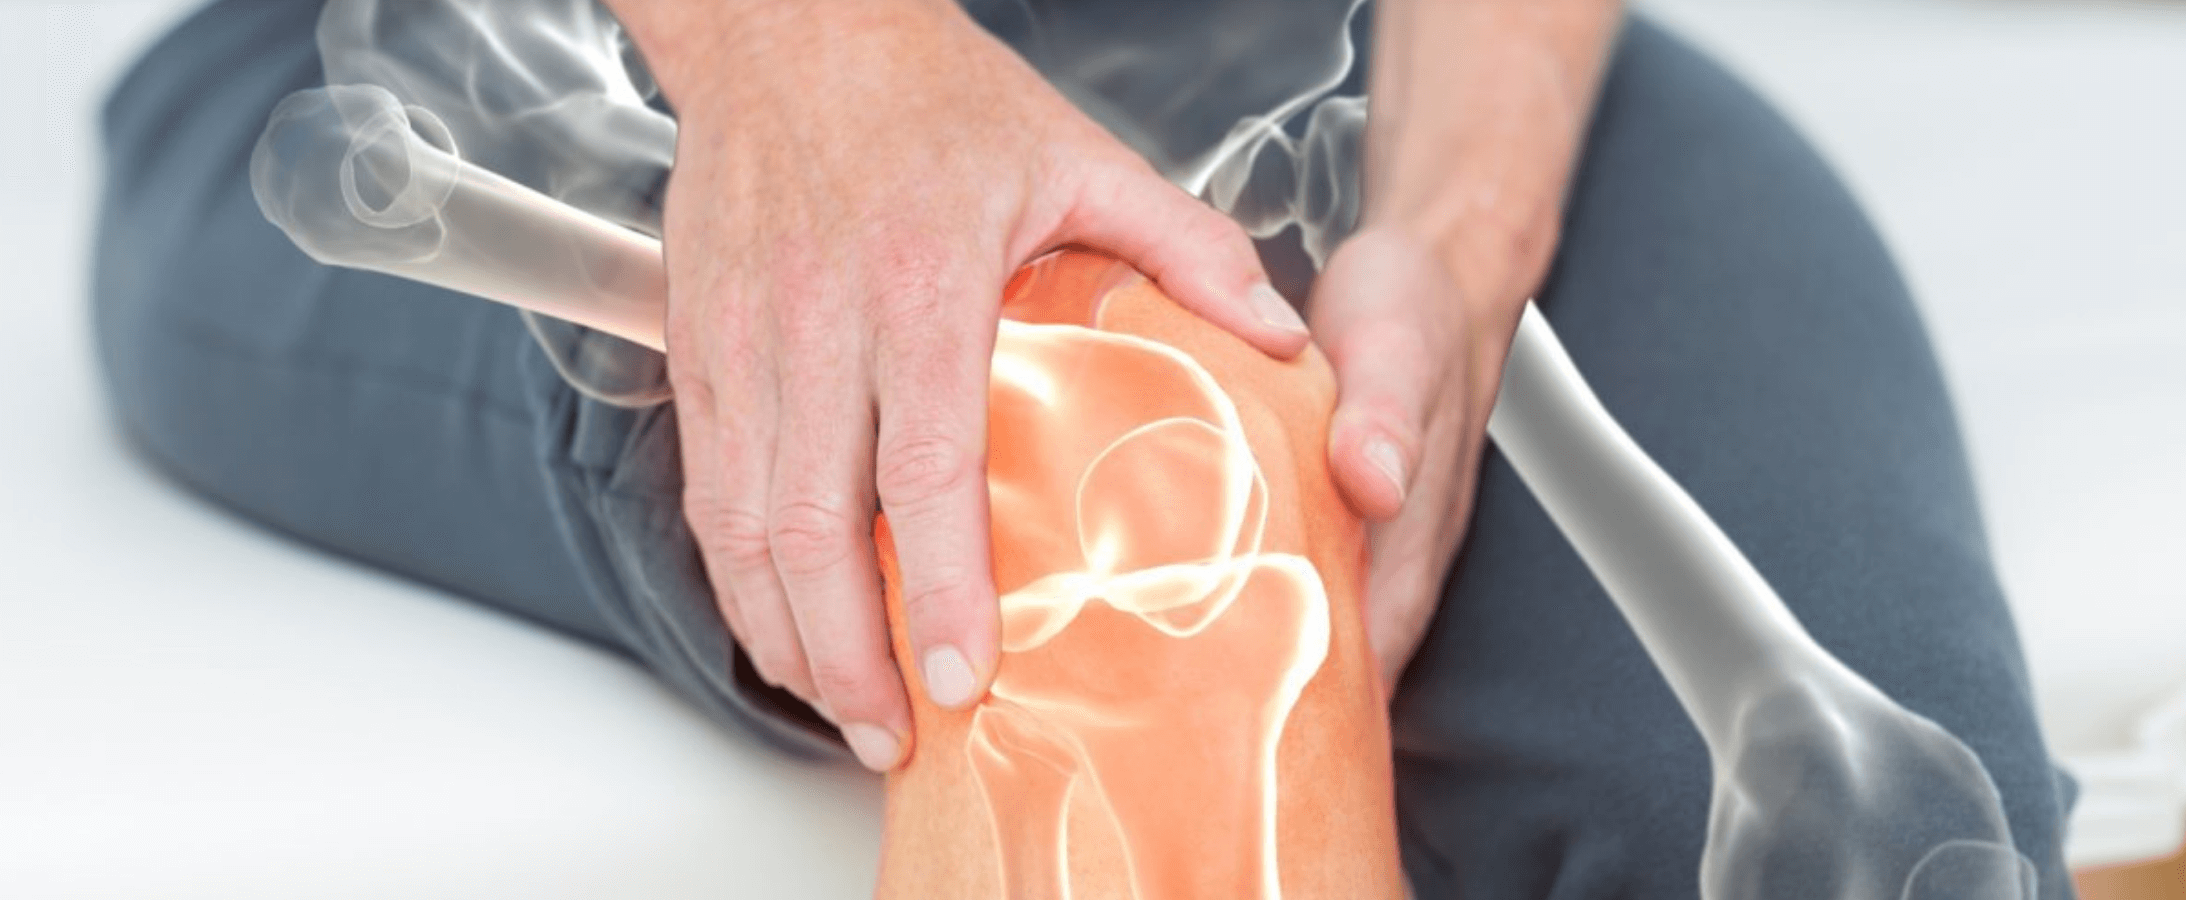 how-to-treat-arthritis-pain-without-medication